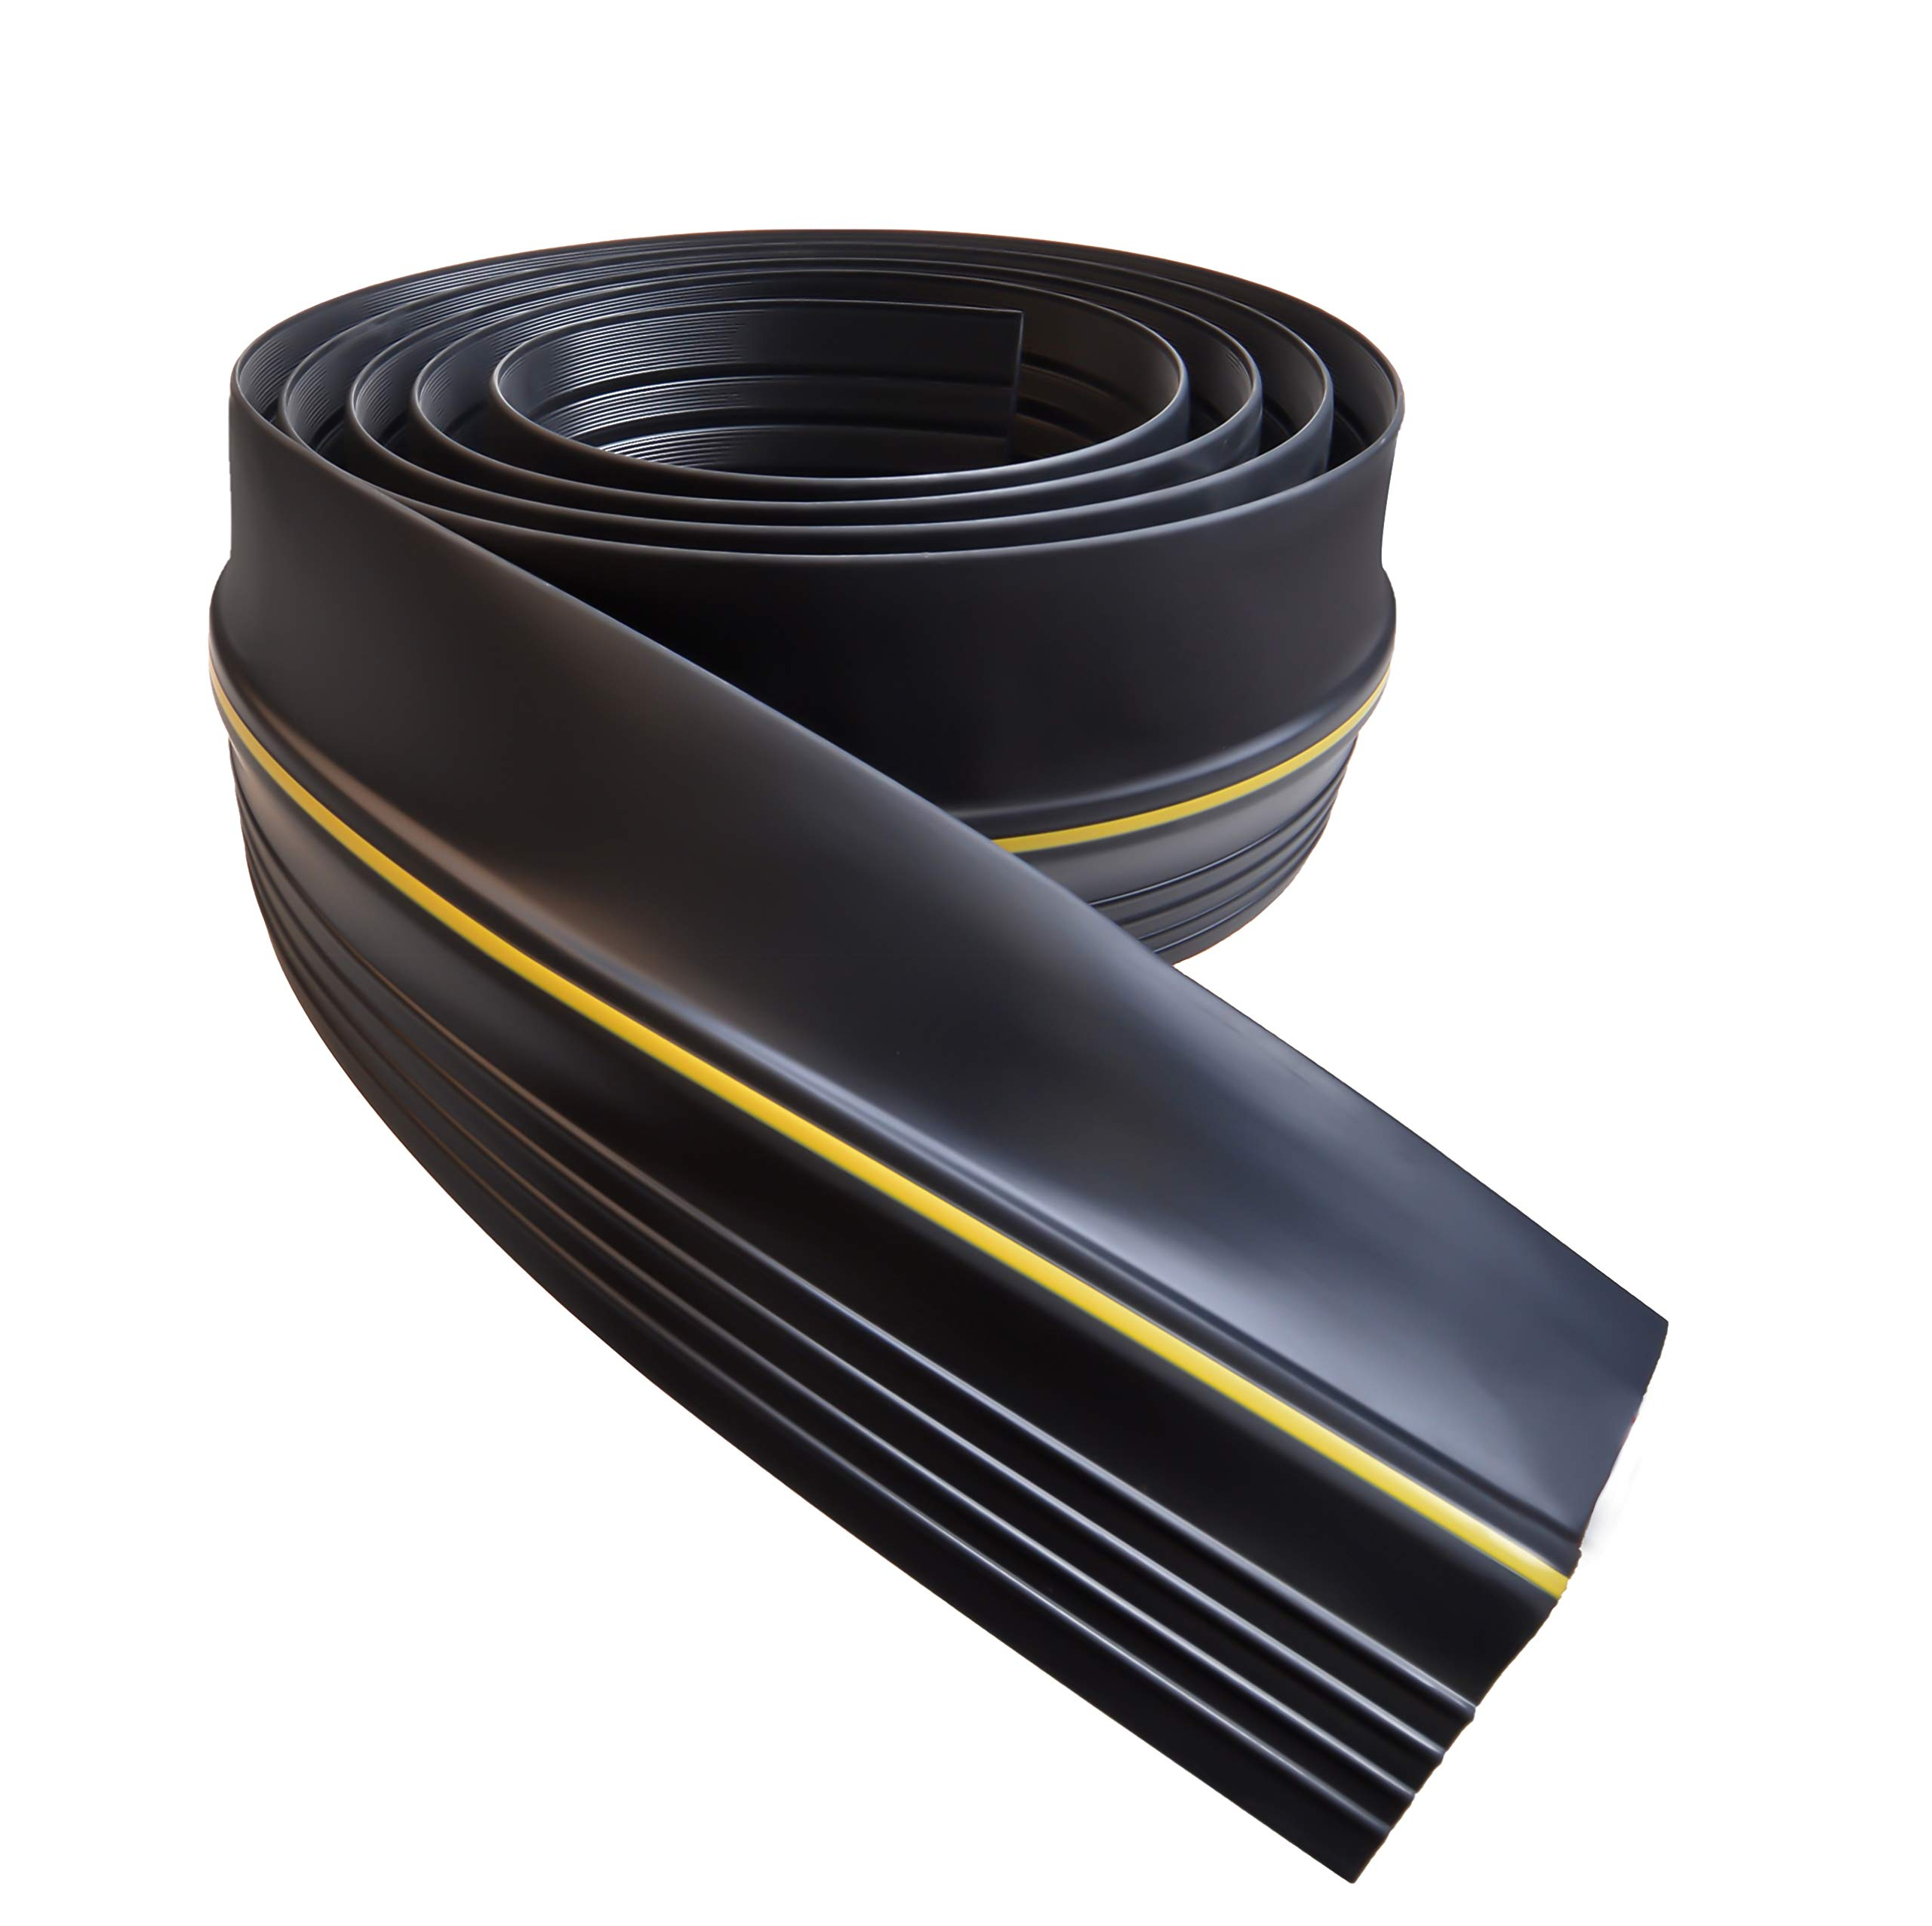 Universal Garage Door Threshold Seal DIY Weather Stripping 20 Feet Length (20ft, Black) by Txbizzer